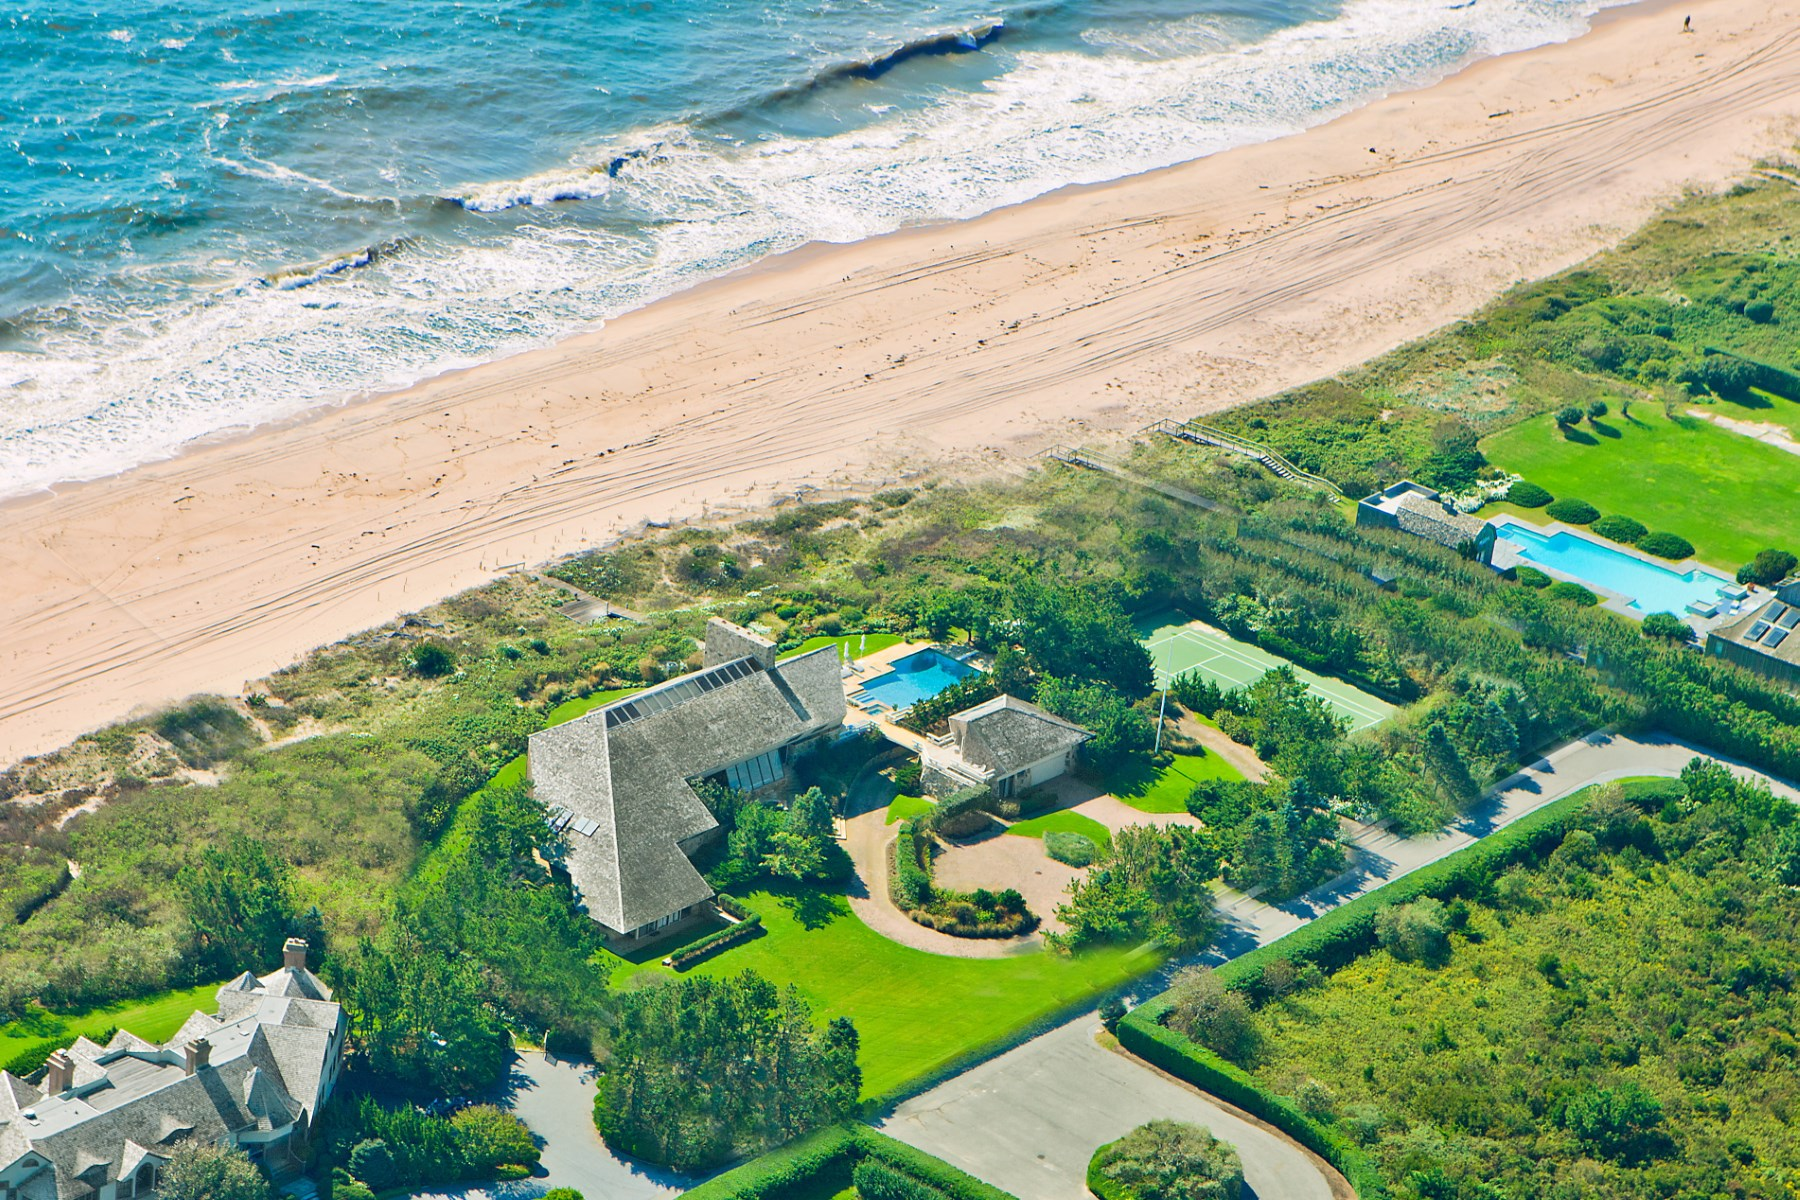 Single Family Home for Rent at Norman Jaffe Oceanfront Modern Southampton, New York 11968 United States